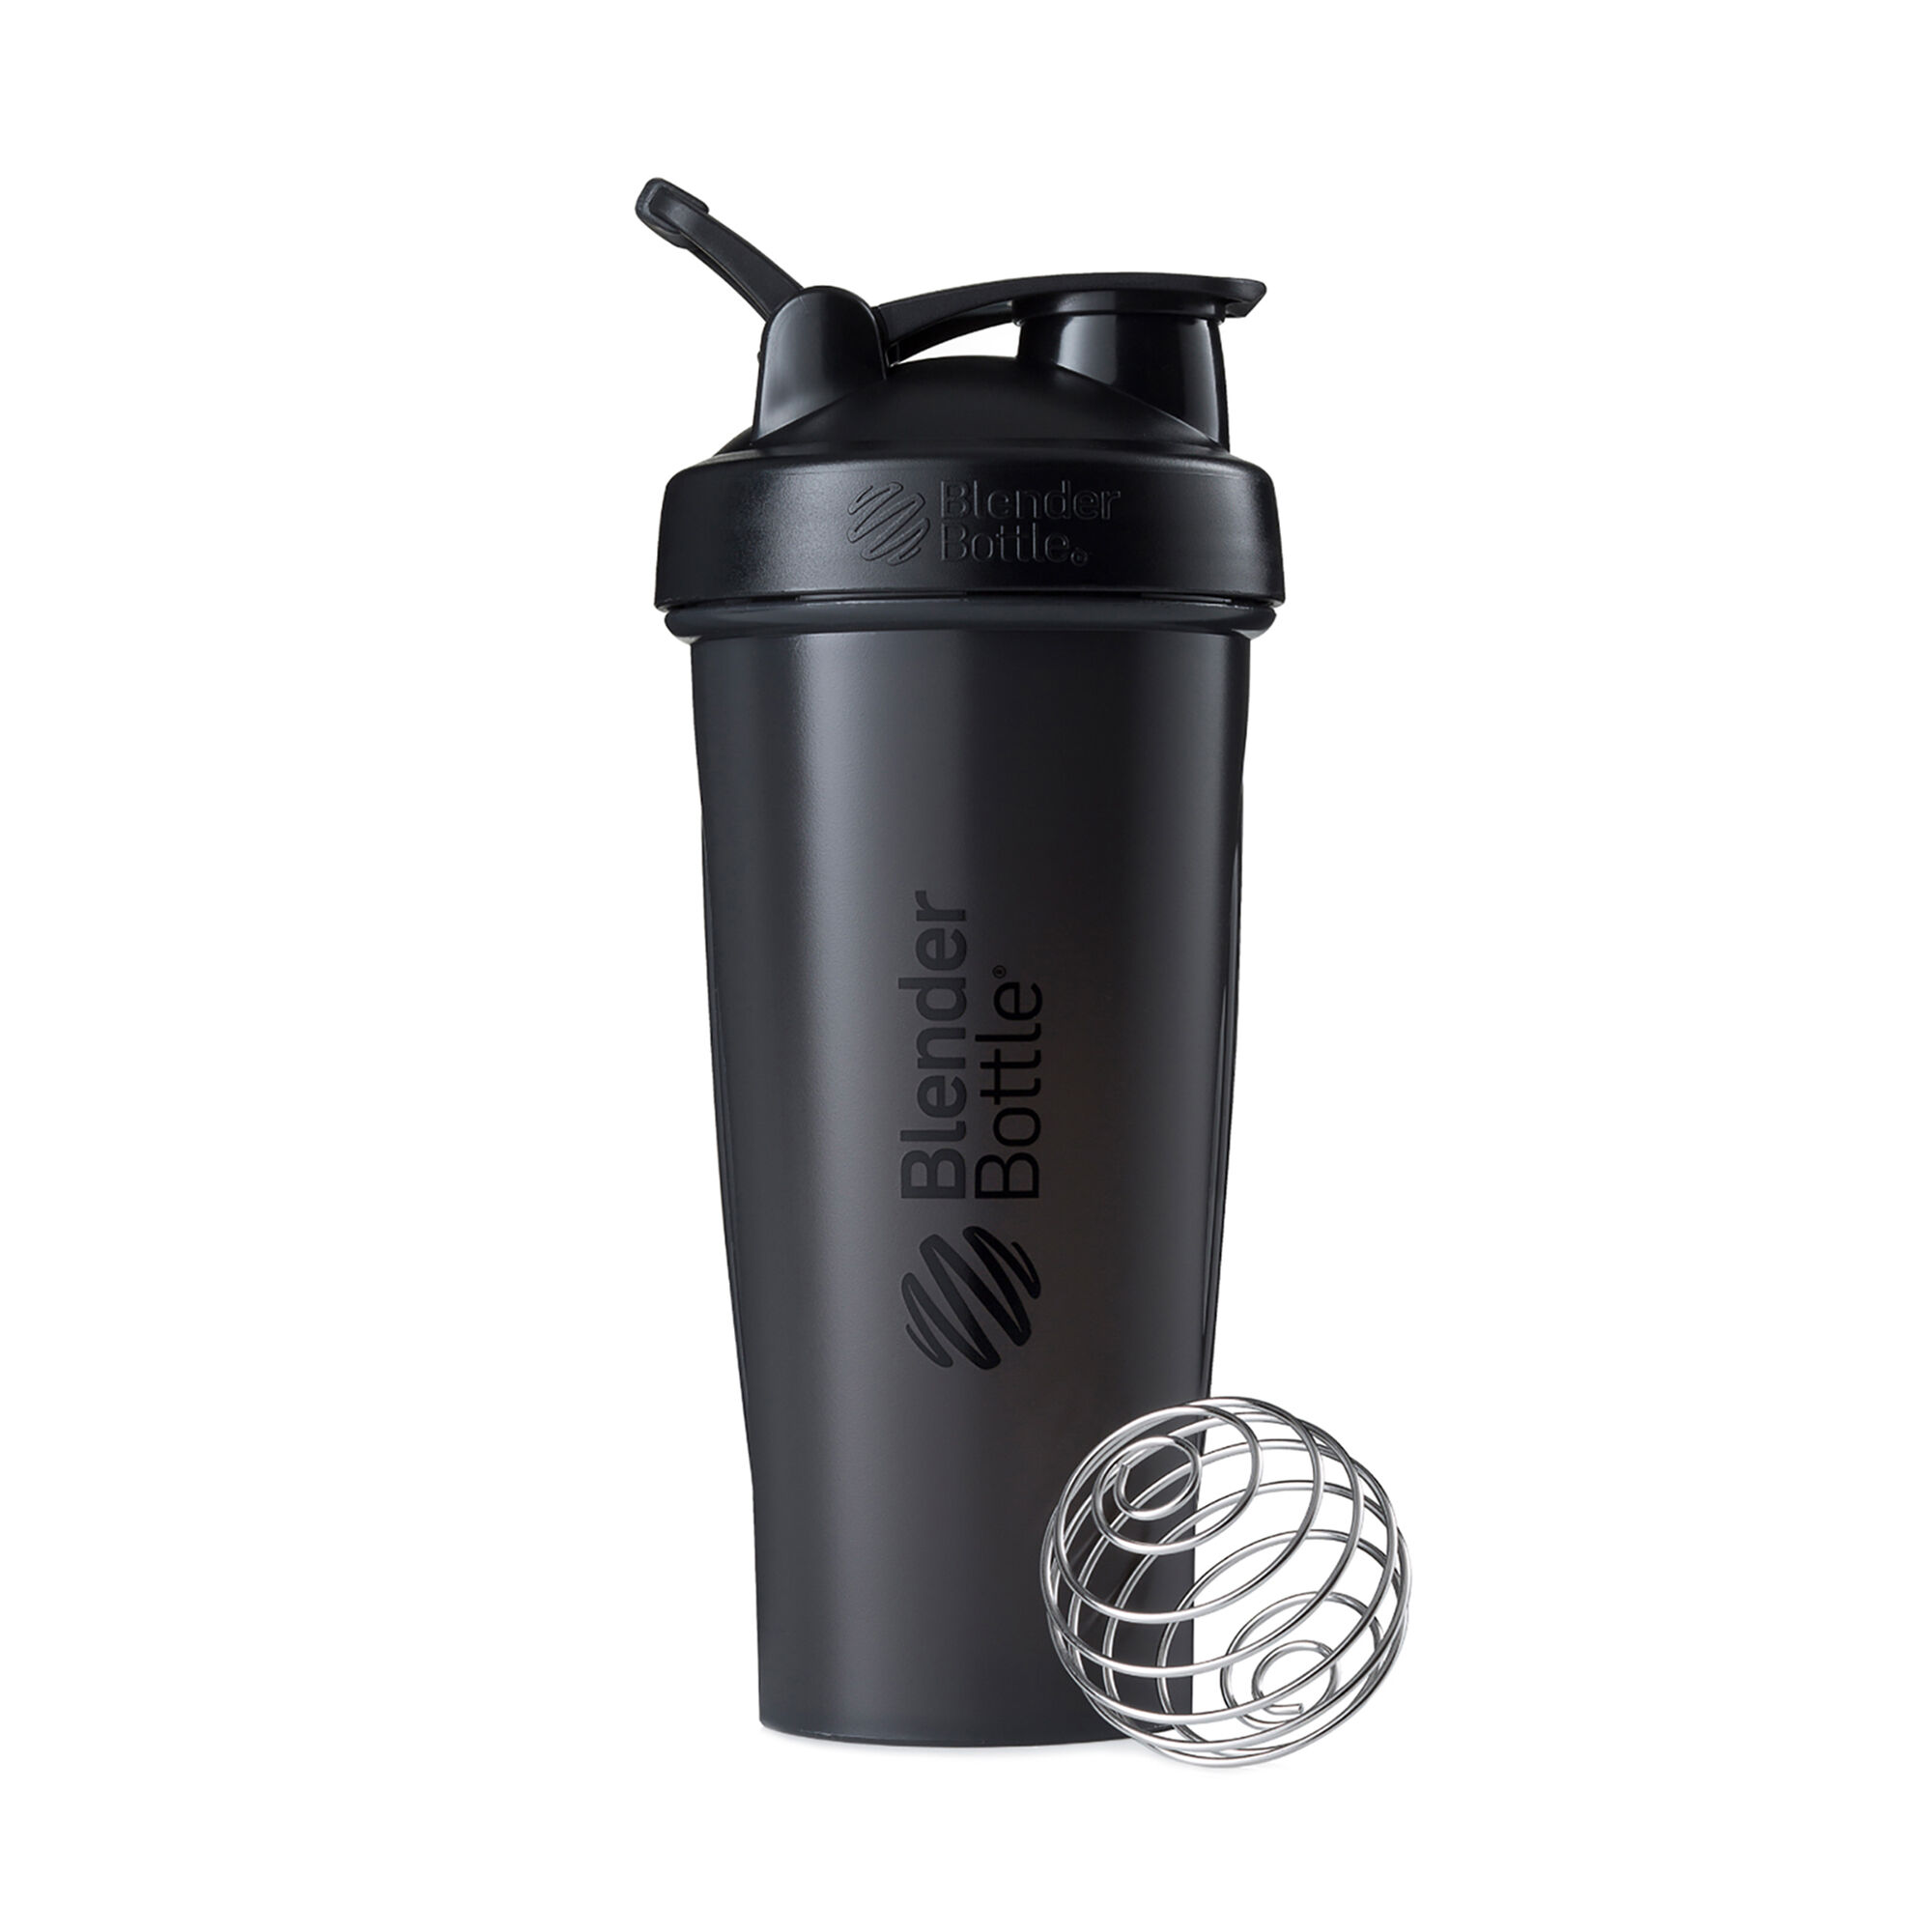 Blenderbottle28oz Classicg (w/ Loop) Black Mixers Shakers And Bottles